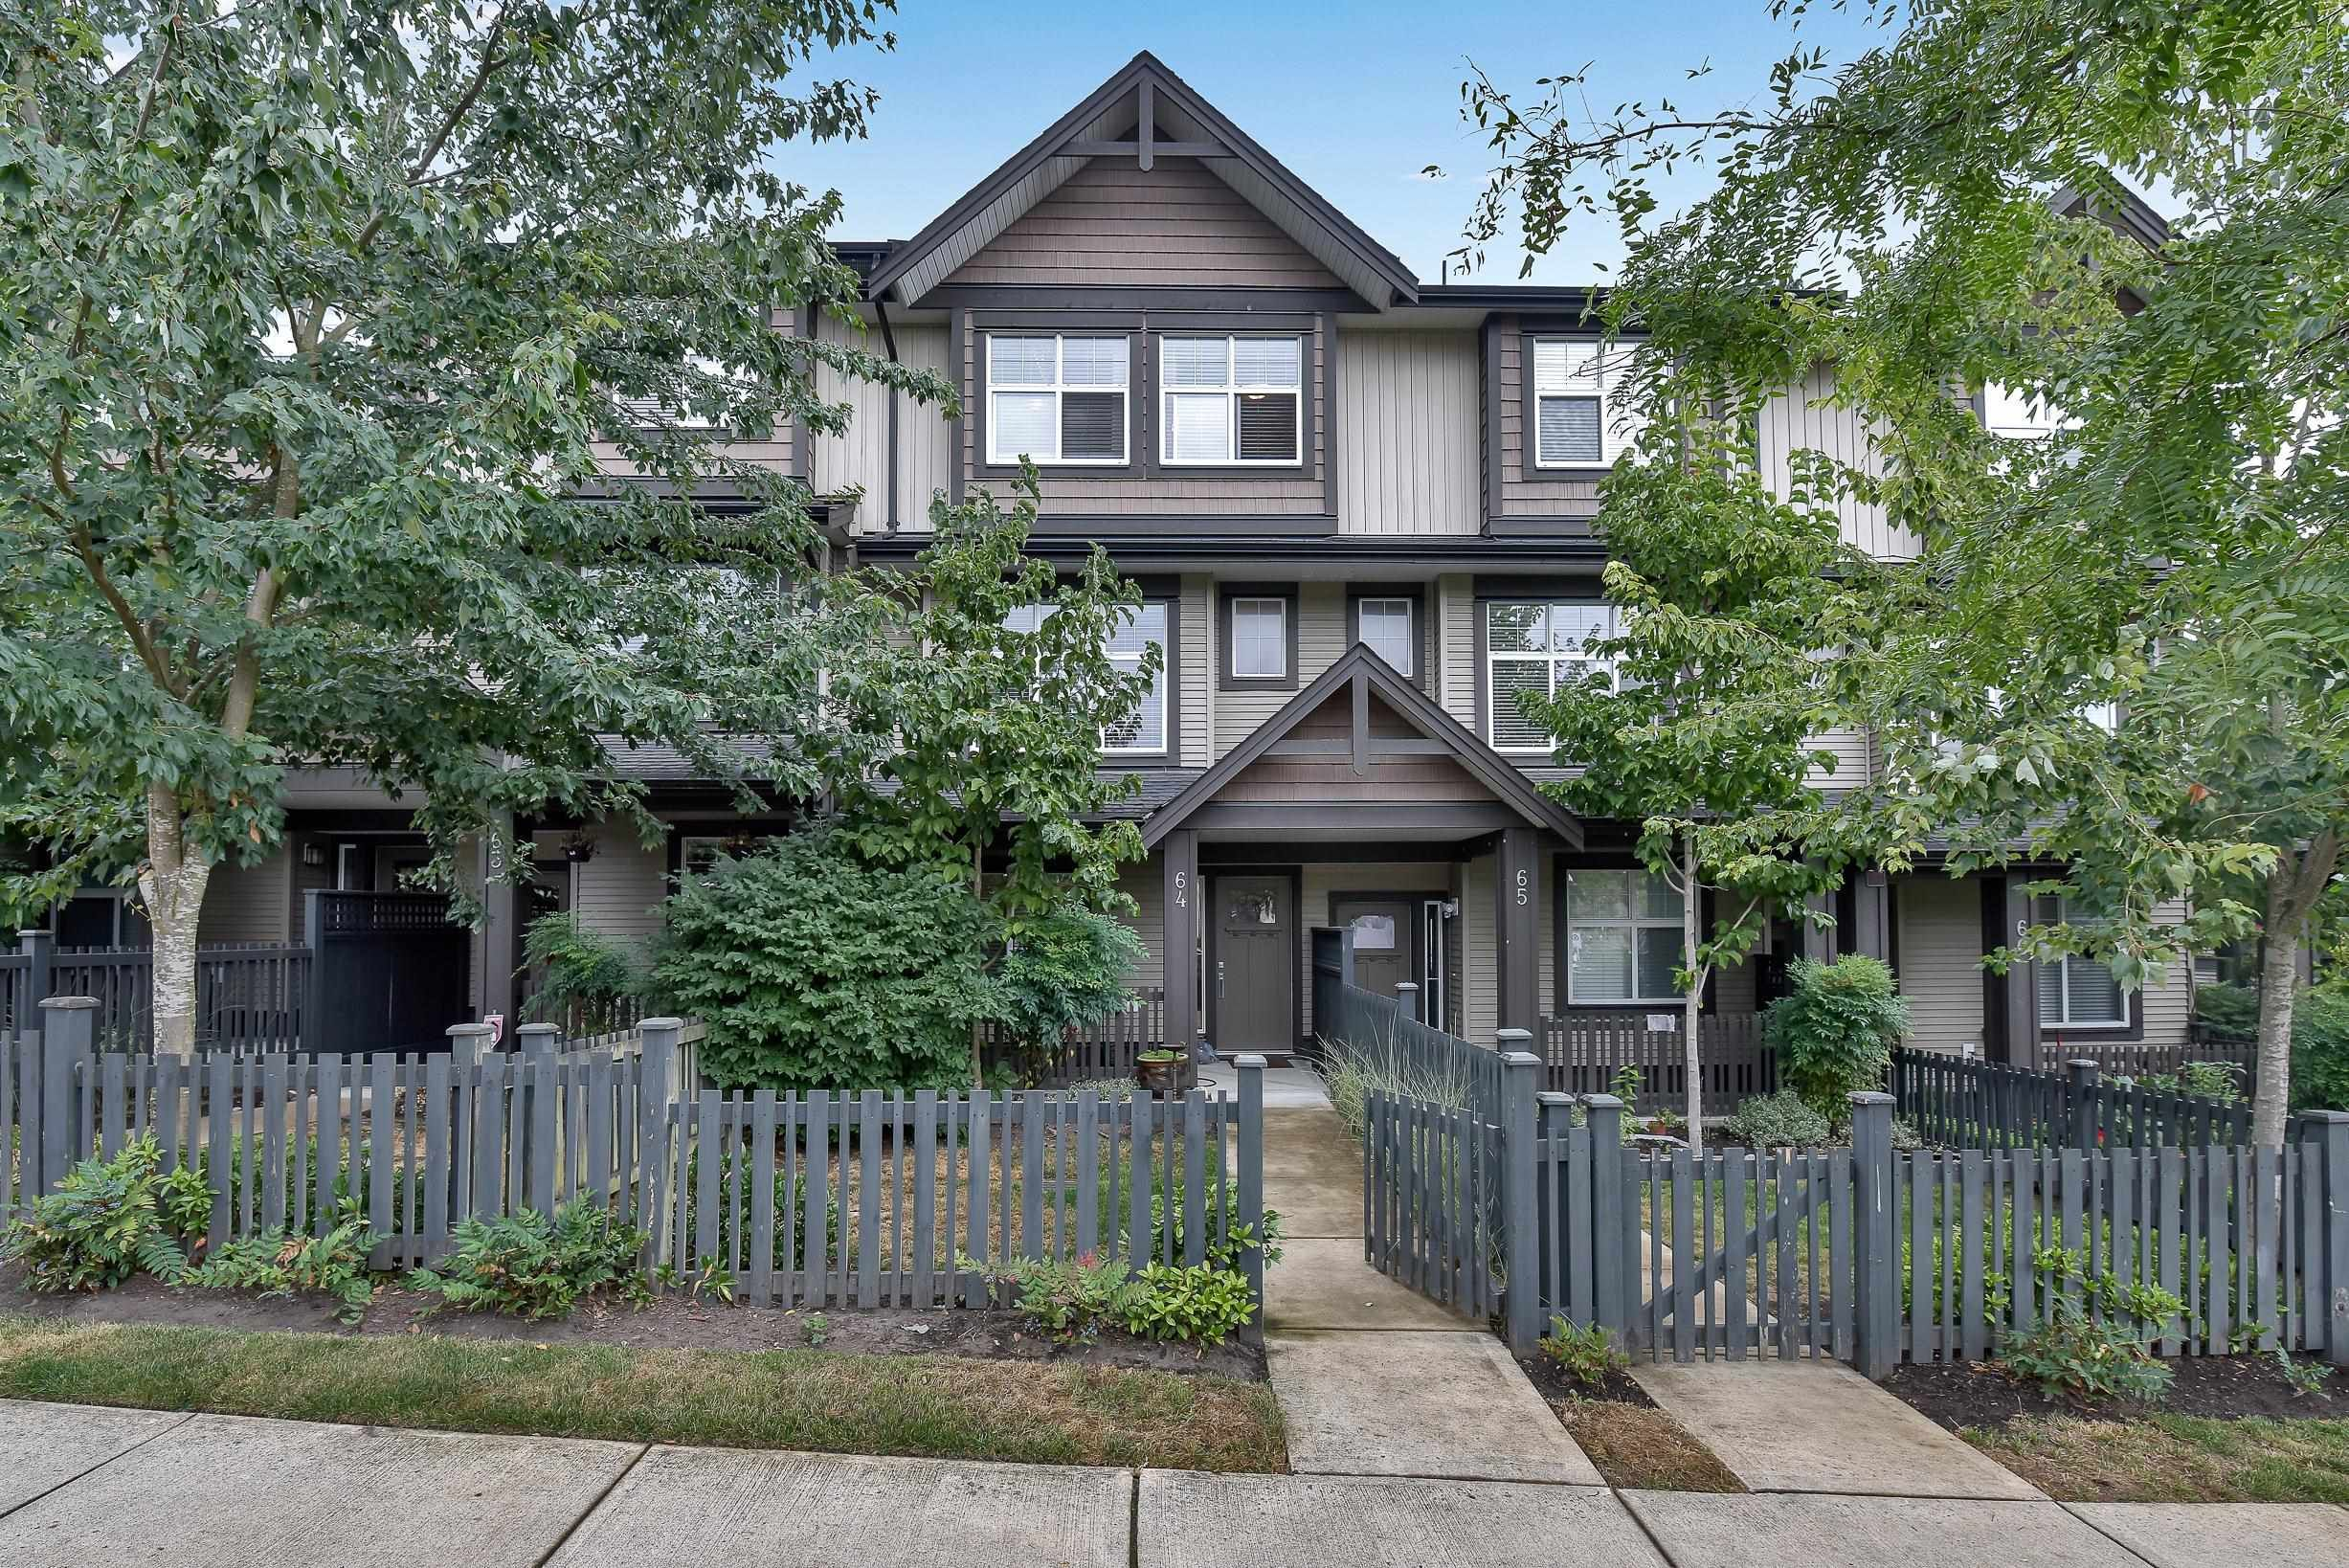 """Main Photo: 64 6123 138 Street in Surrey: Sullivan Station Townhouse for sale in """"Panorama Woods"""" : MLS®# R2608409"""